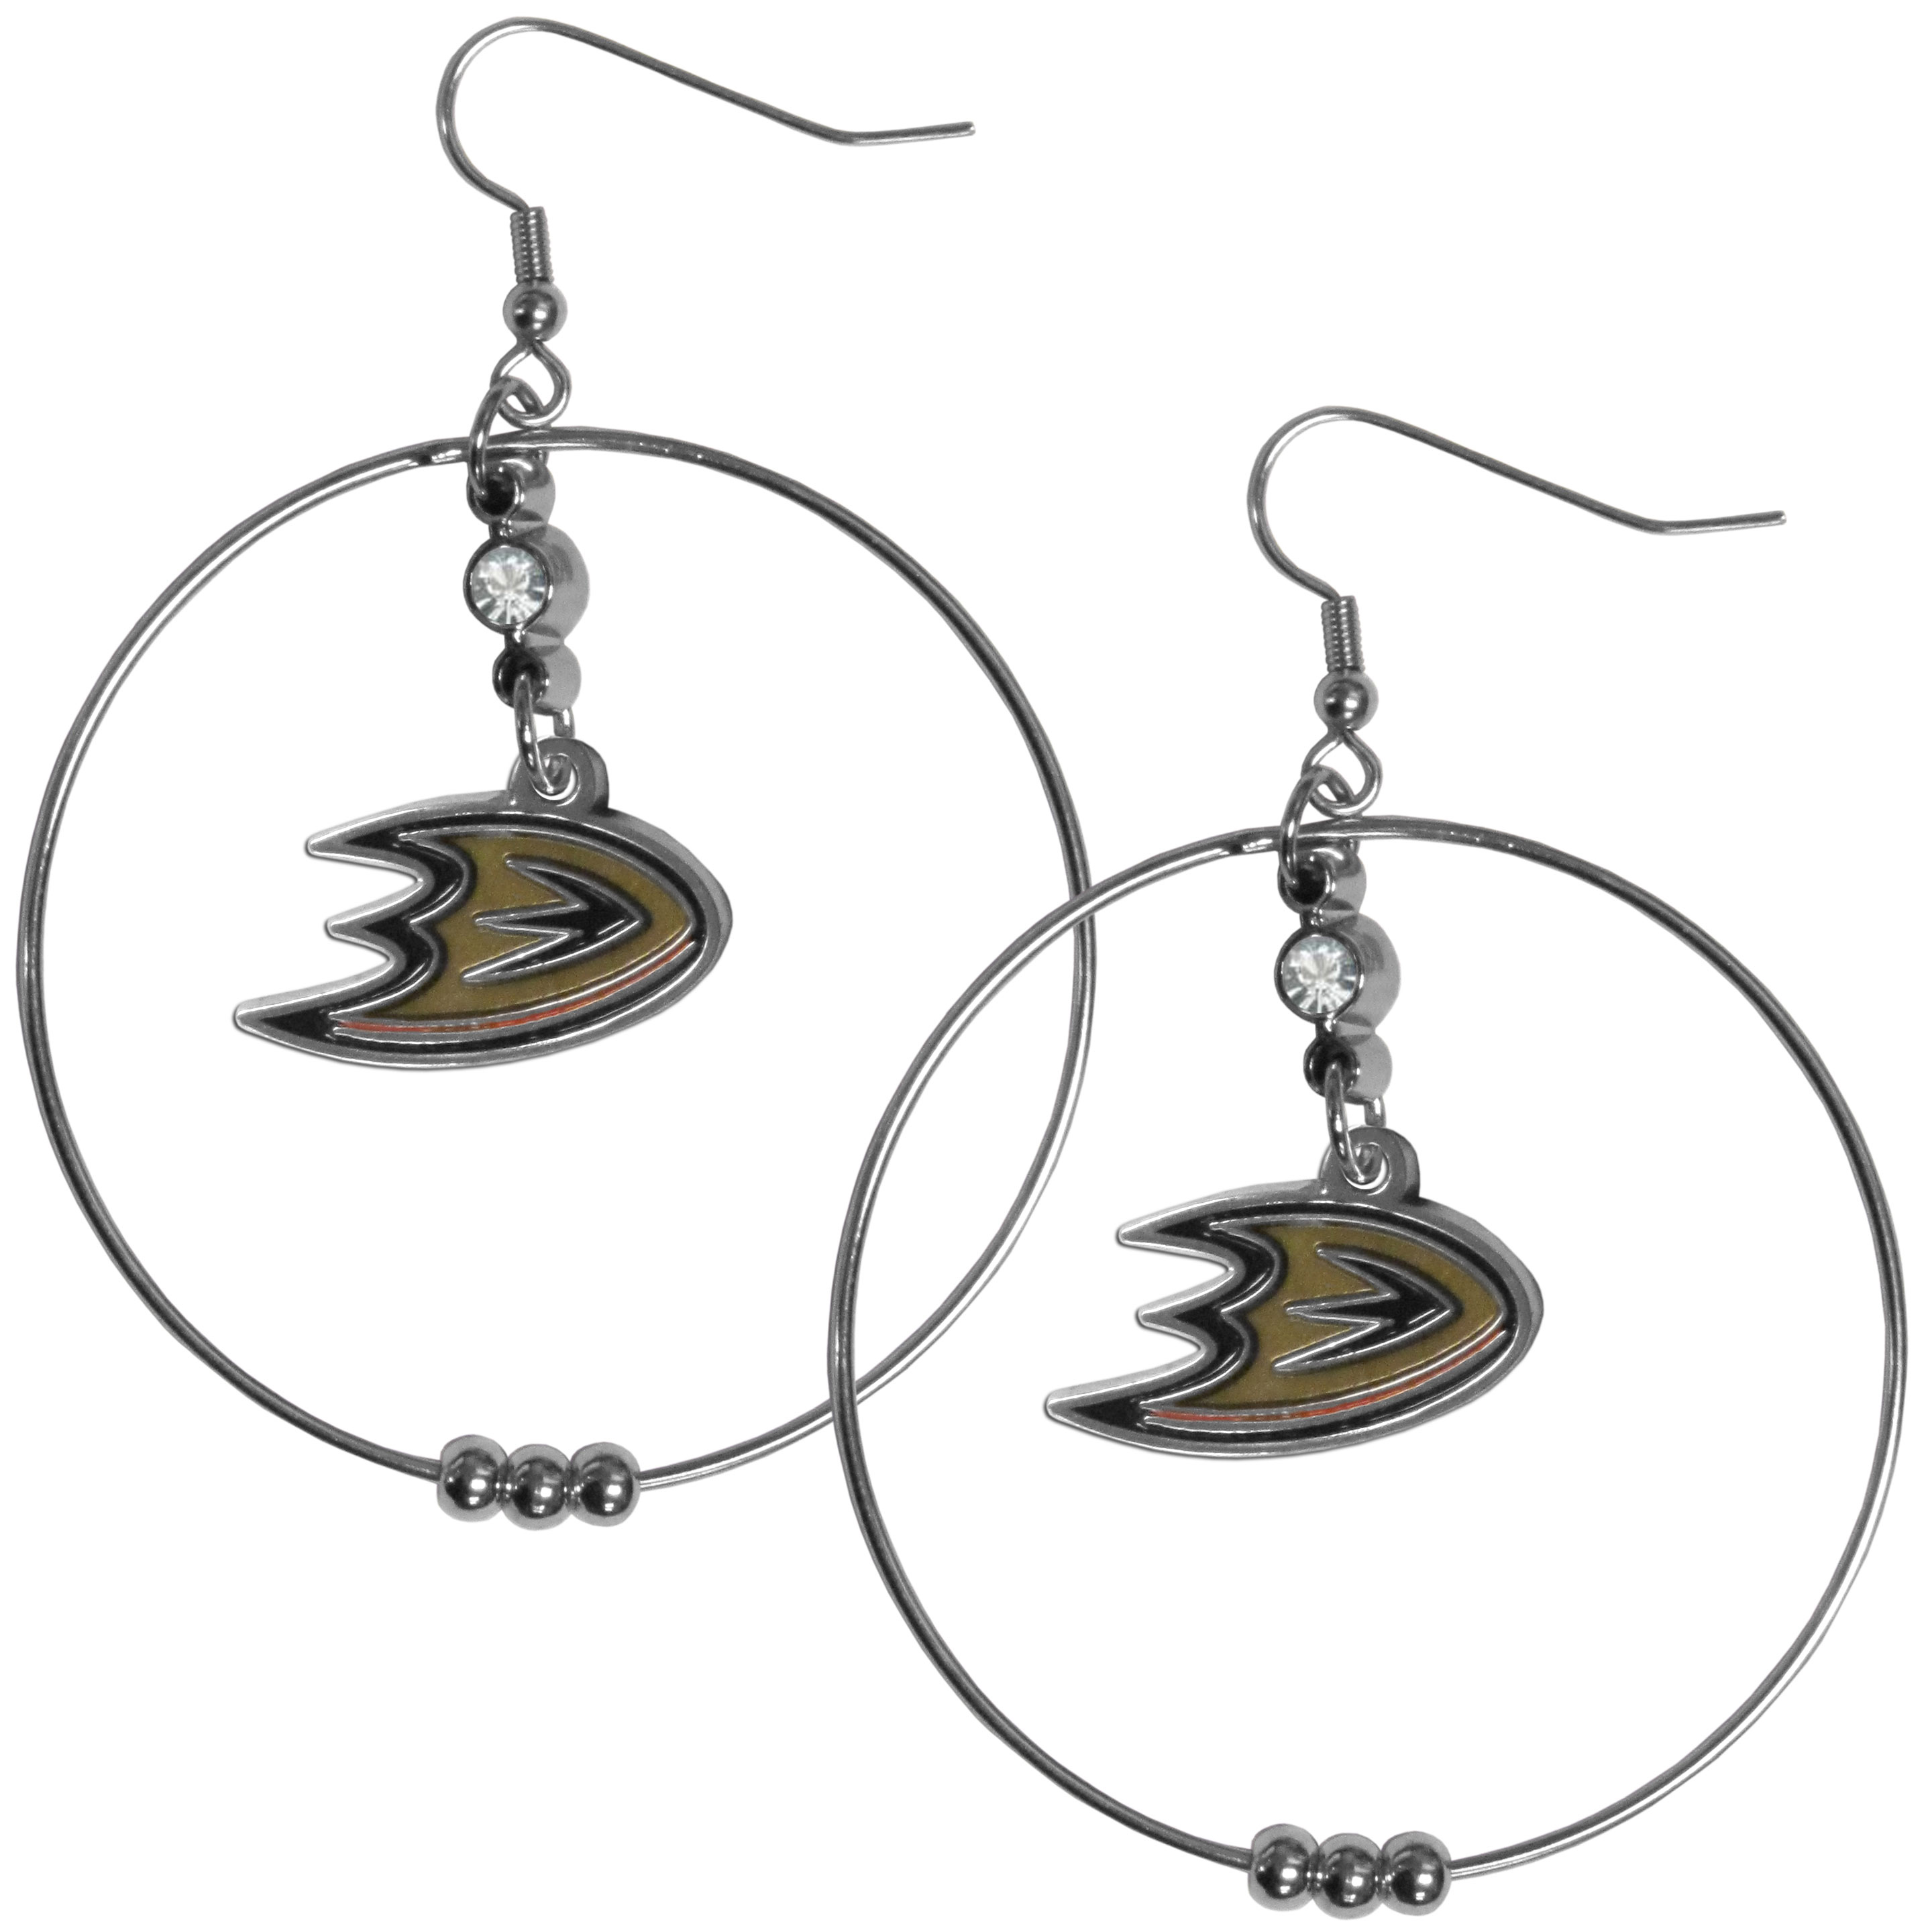 Anaheim Ducks® 2 Inch Hoop Earrings - Our large hoop earrings have a fully cast and enameled Anaheim Ducks® charm with enameled detail and a high polish nickel free chrome finish and rhinestone access. Hypoallergenic fishhook posts.